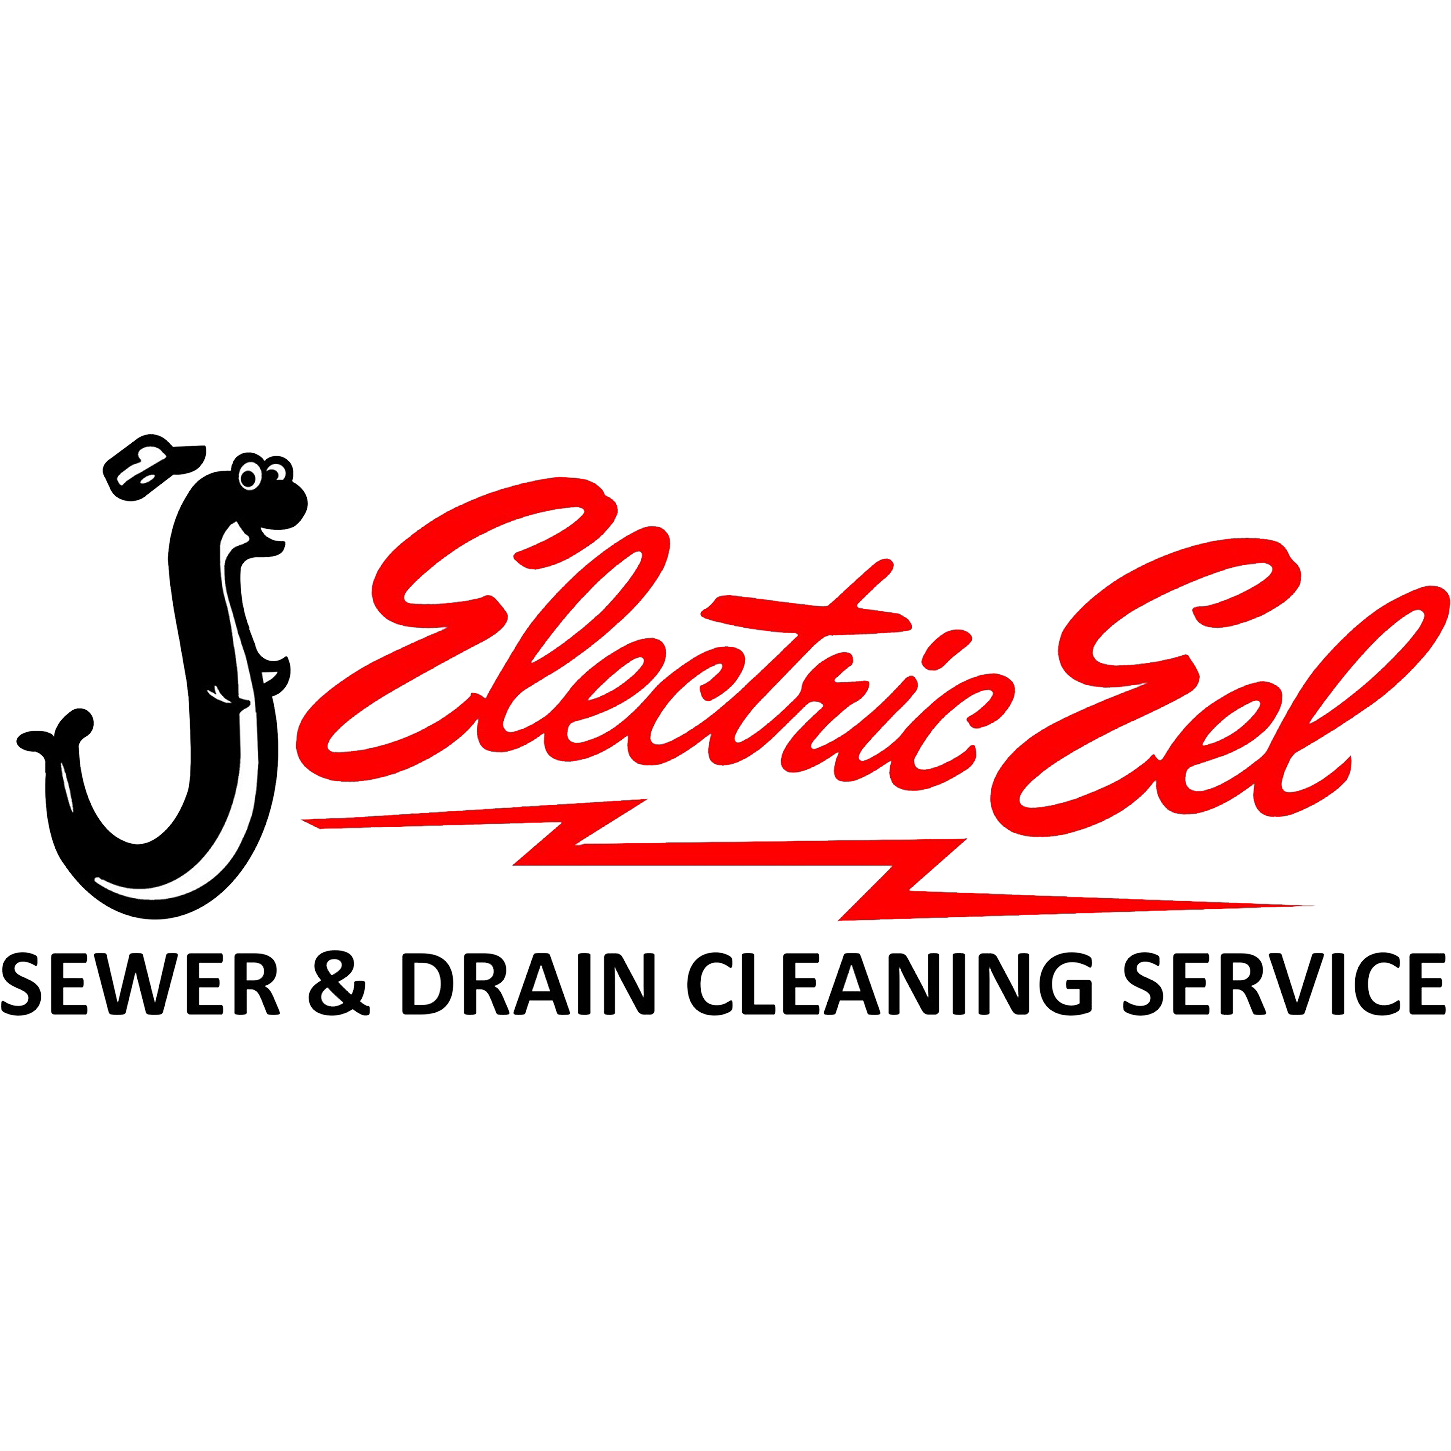 Culvert Cleaning Services : Electric eel sewer drain cleaning plumbers white